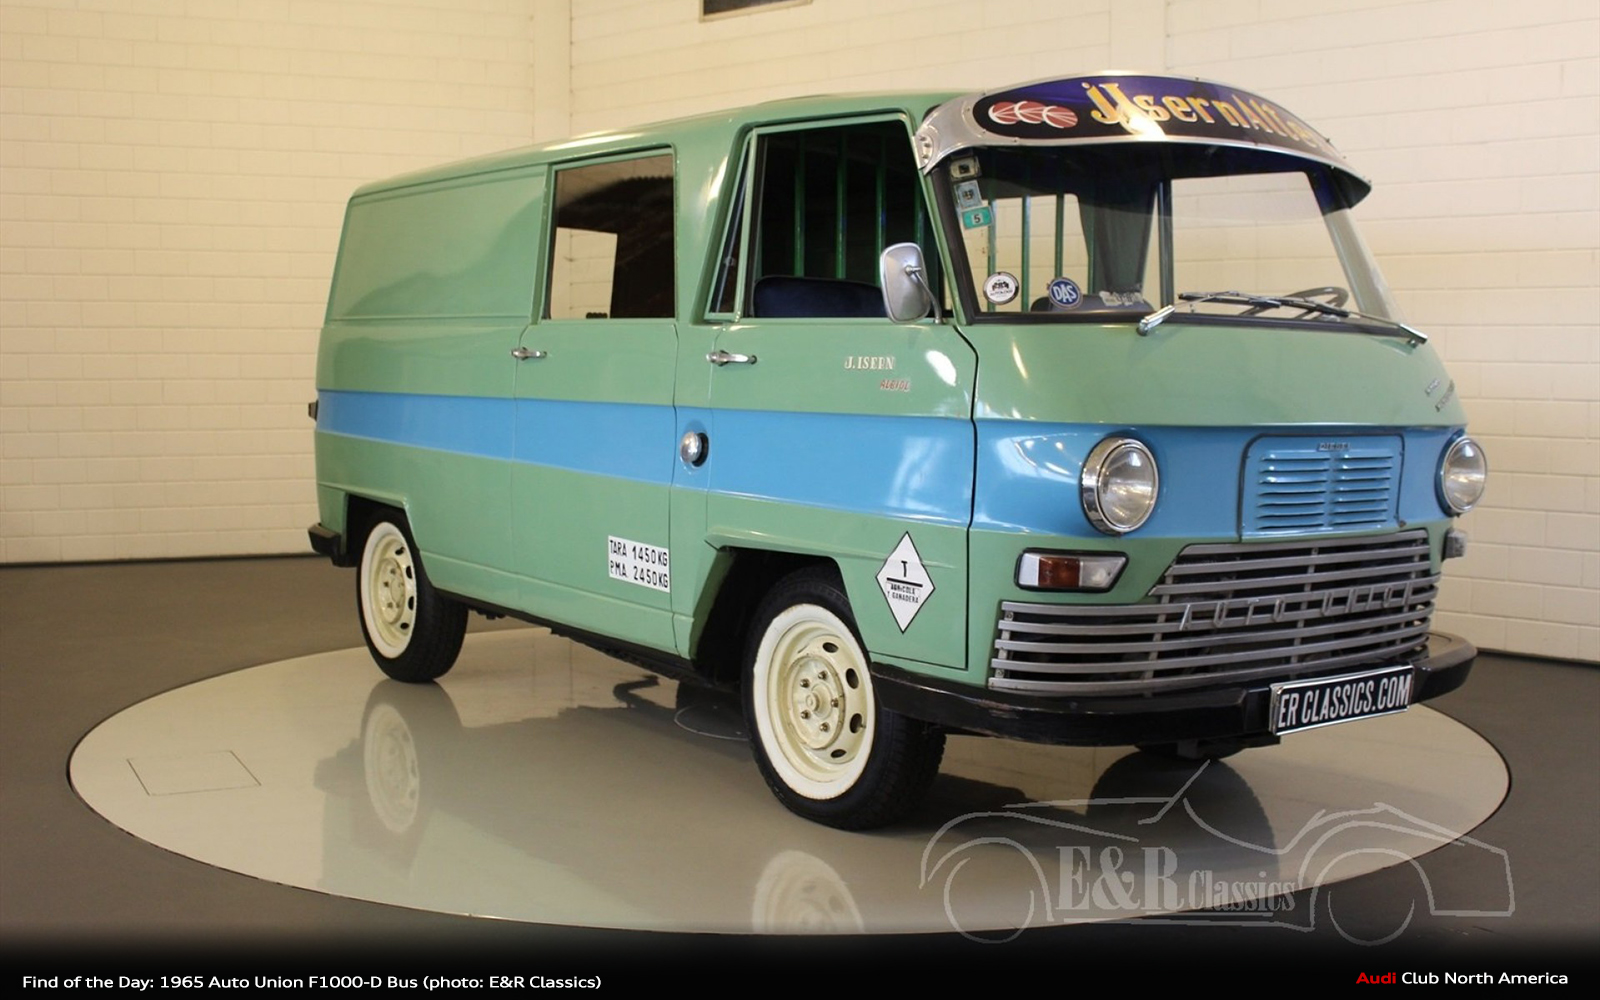 Find of the Day: 1965 Auto Union F1000-D Bus